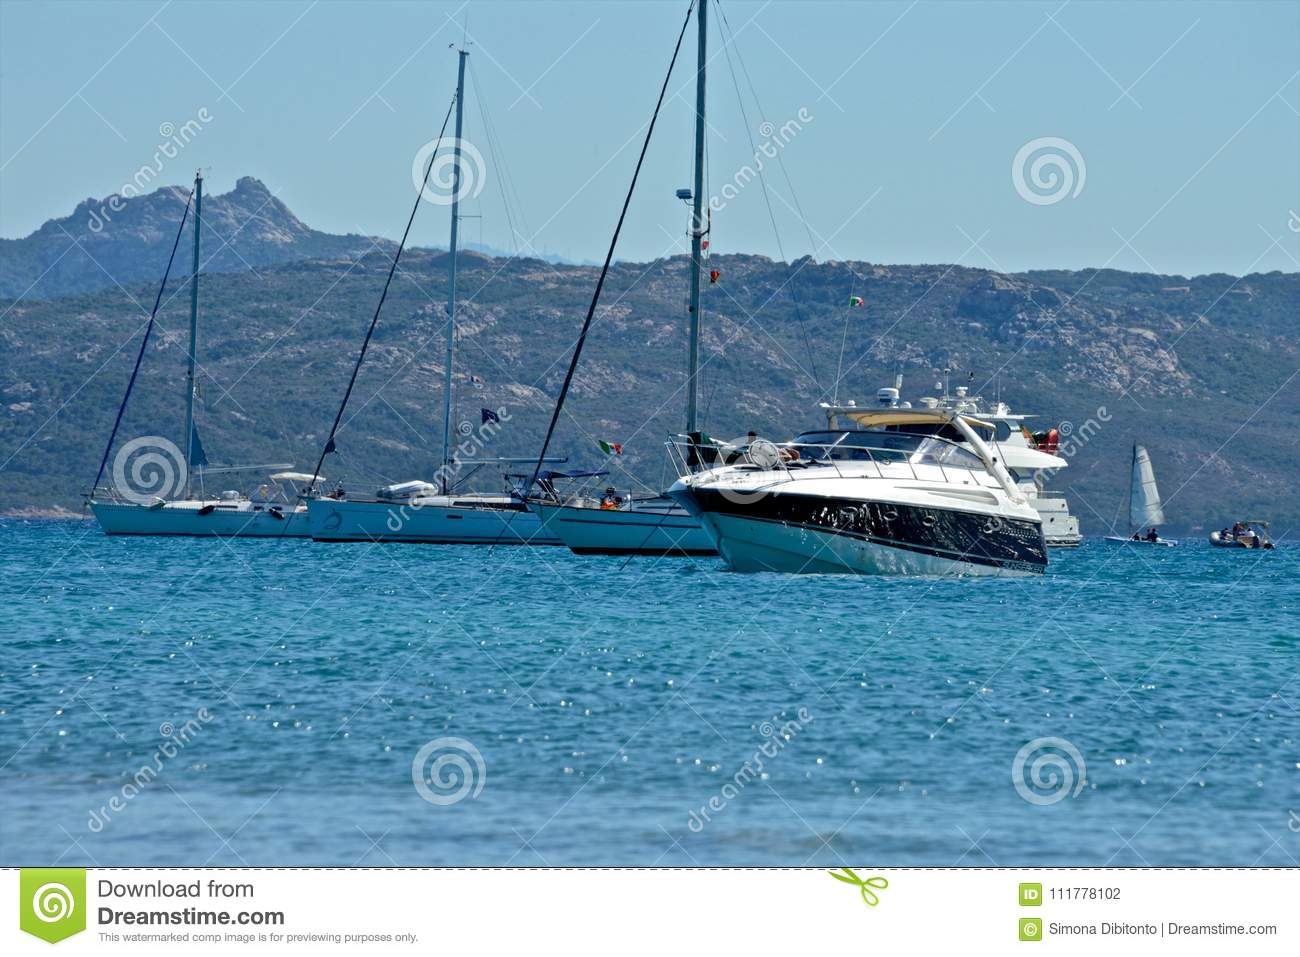 Yachts moored and sailing boats in a blue sea